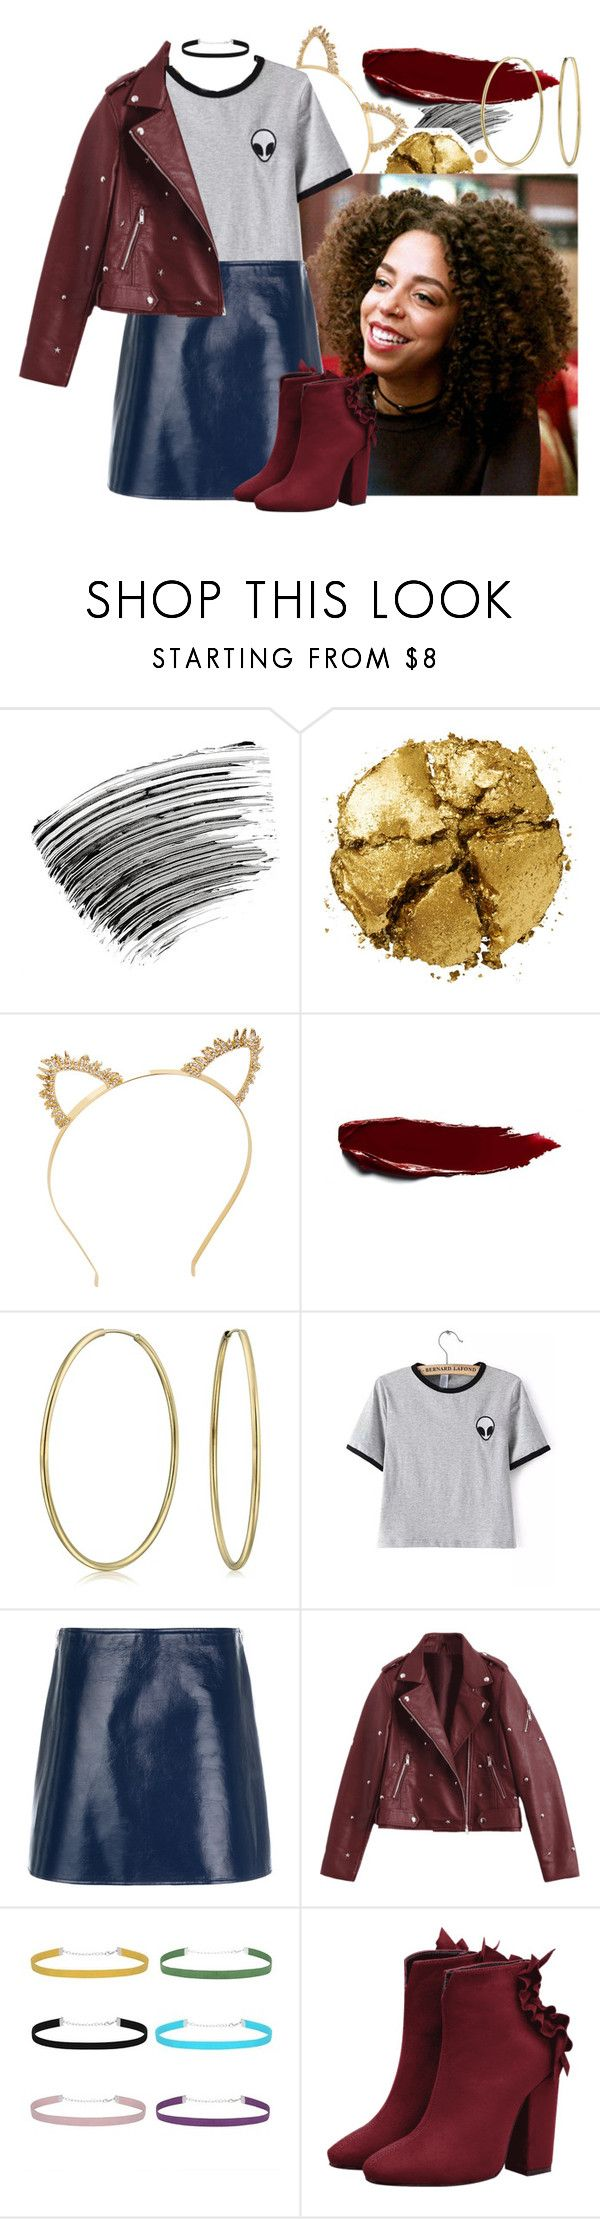 """val"" by calliebethd ❤ liked on Polyvore featuring Bobbi Brown Cosmetics, Pat McGrath, BCBGMAXAZRIA, Bling Jewelry, WithChic, Courrèges, Hot Topic, gold, riverdale and ValerieBrown"